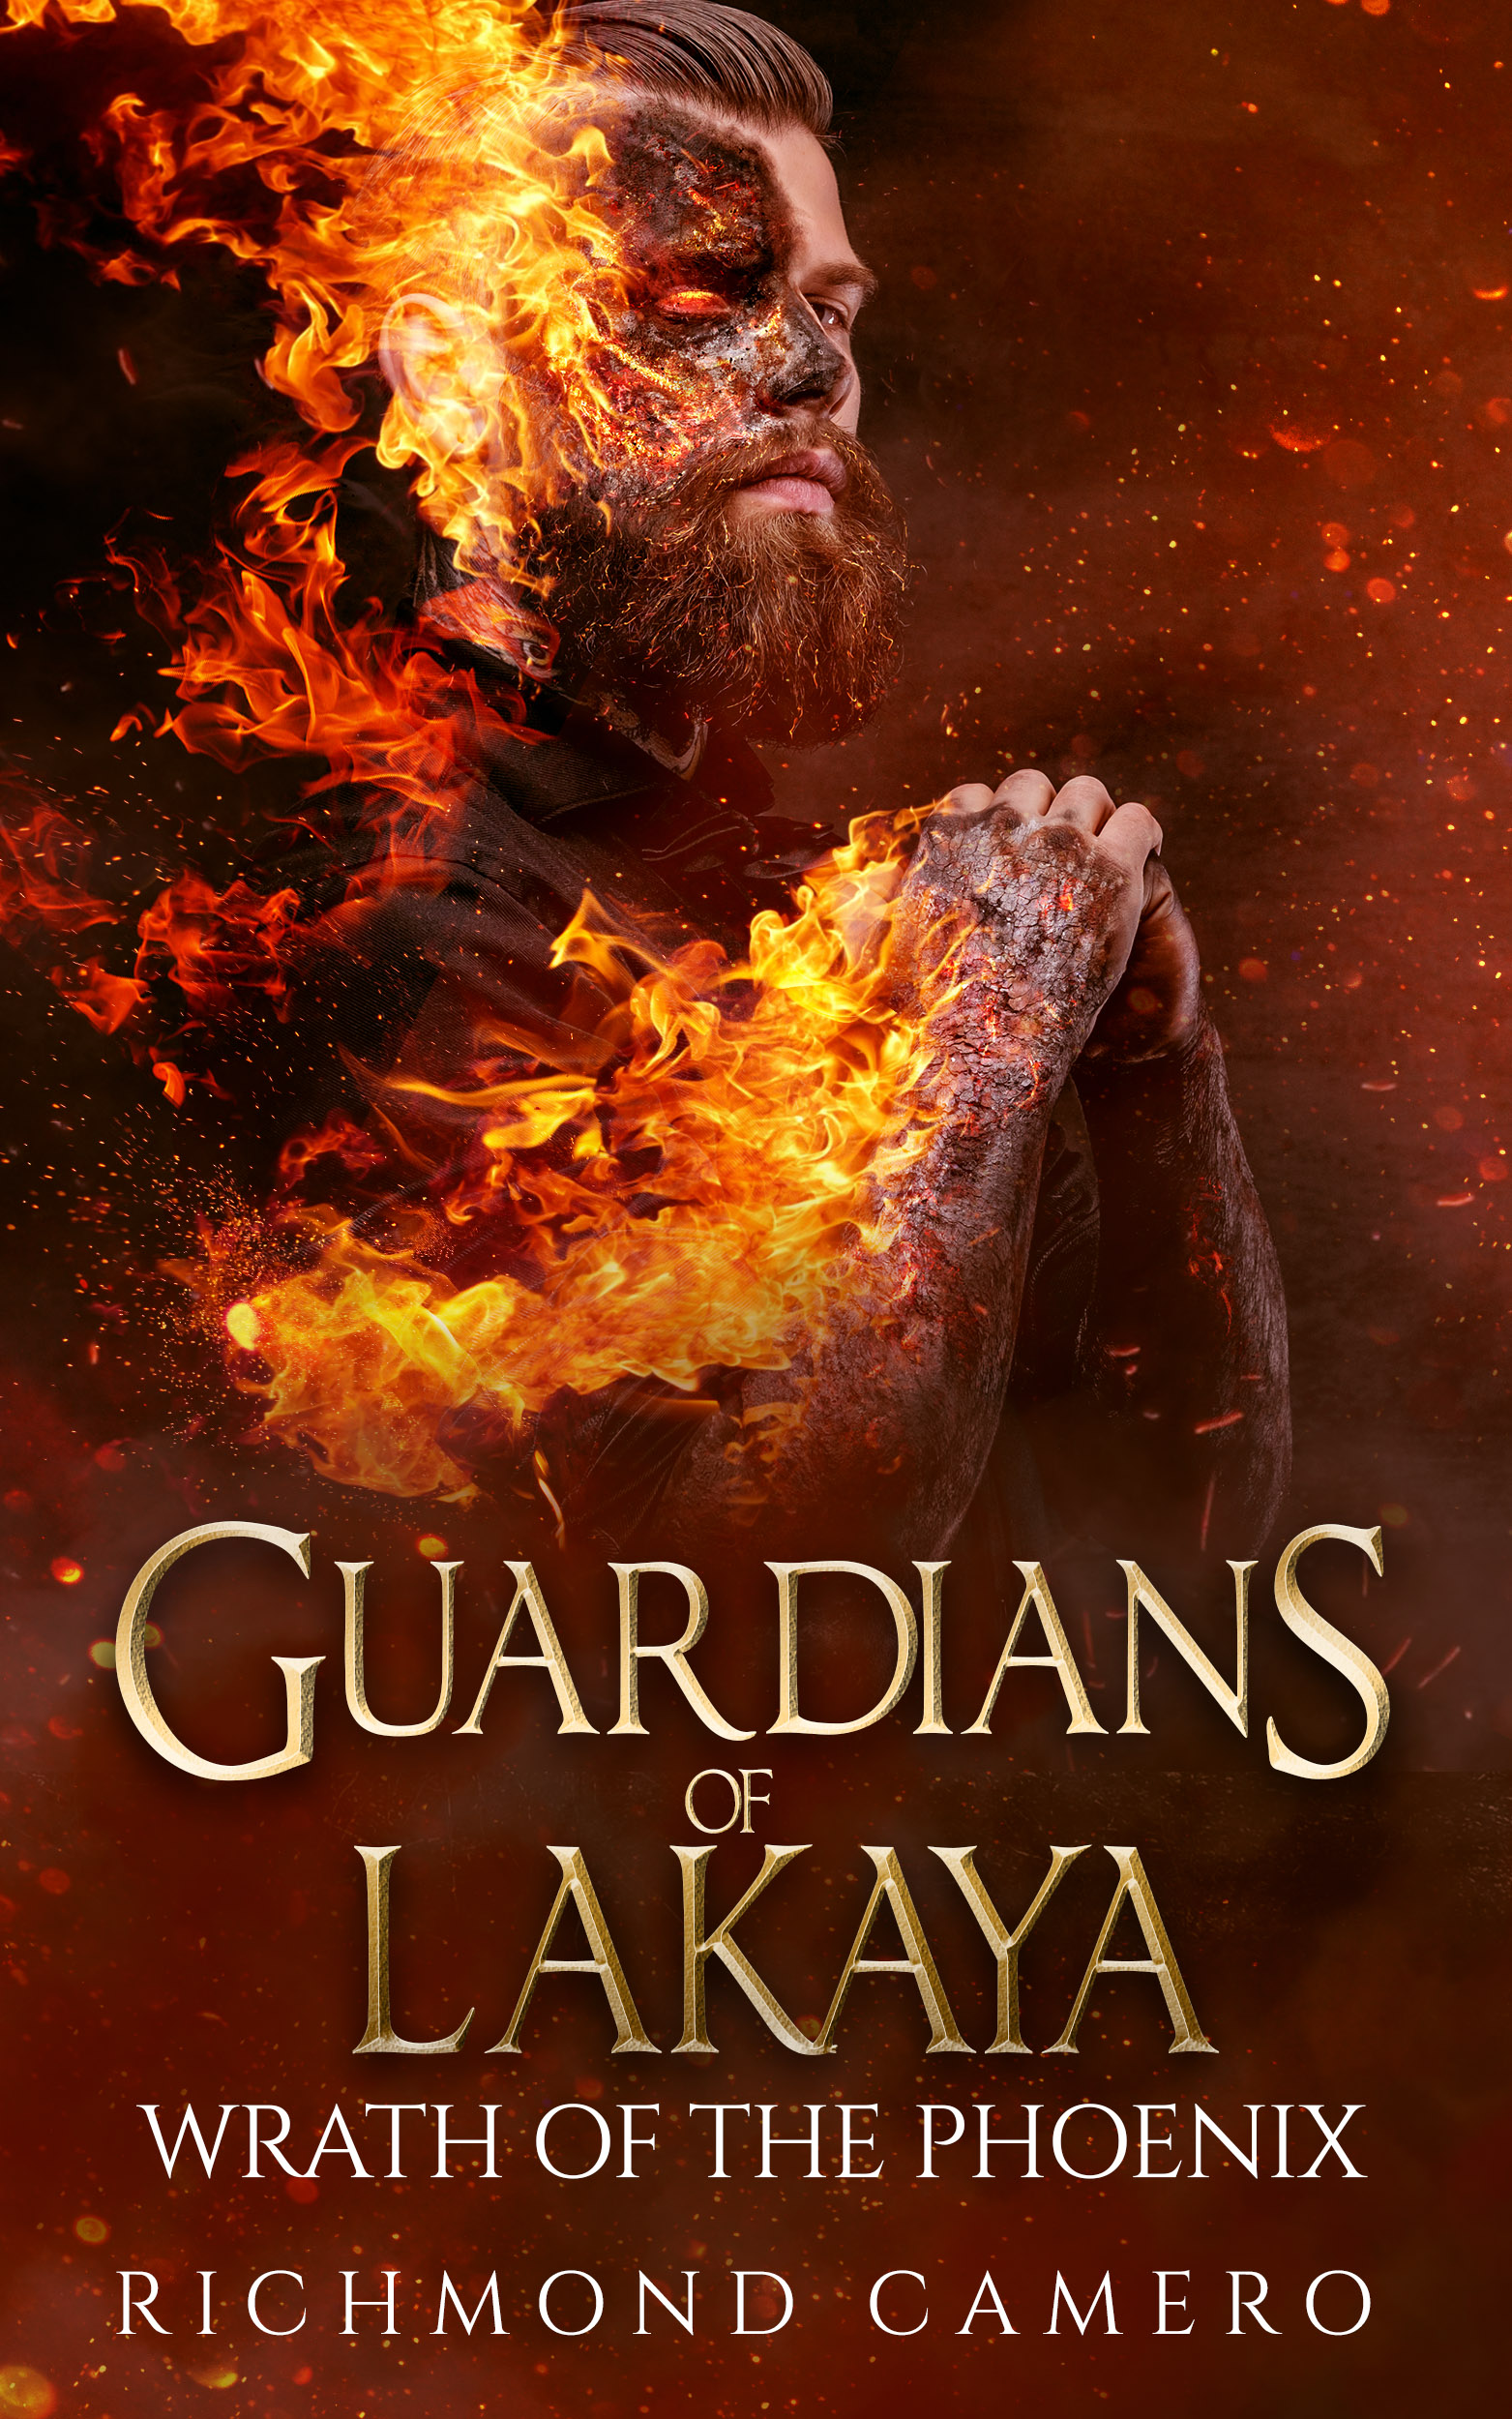 Guardians of Lakaya: Wrath of the Phoenix